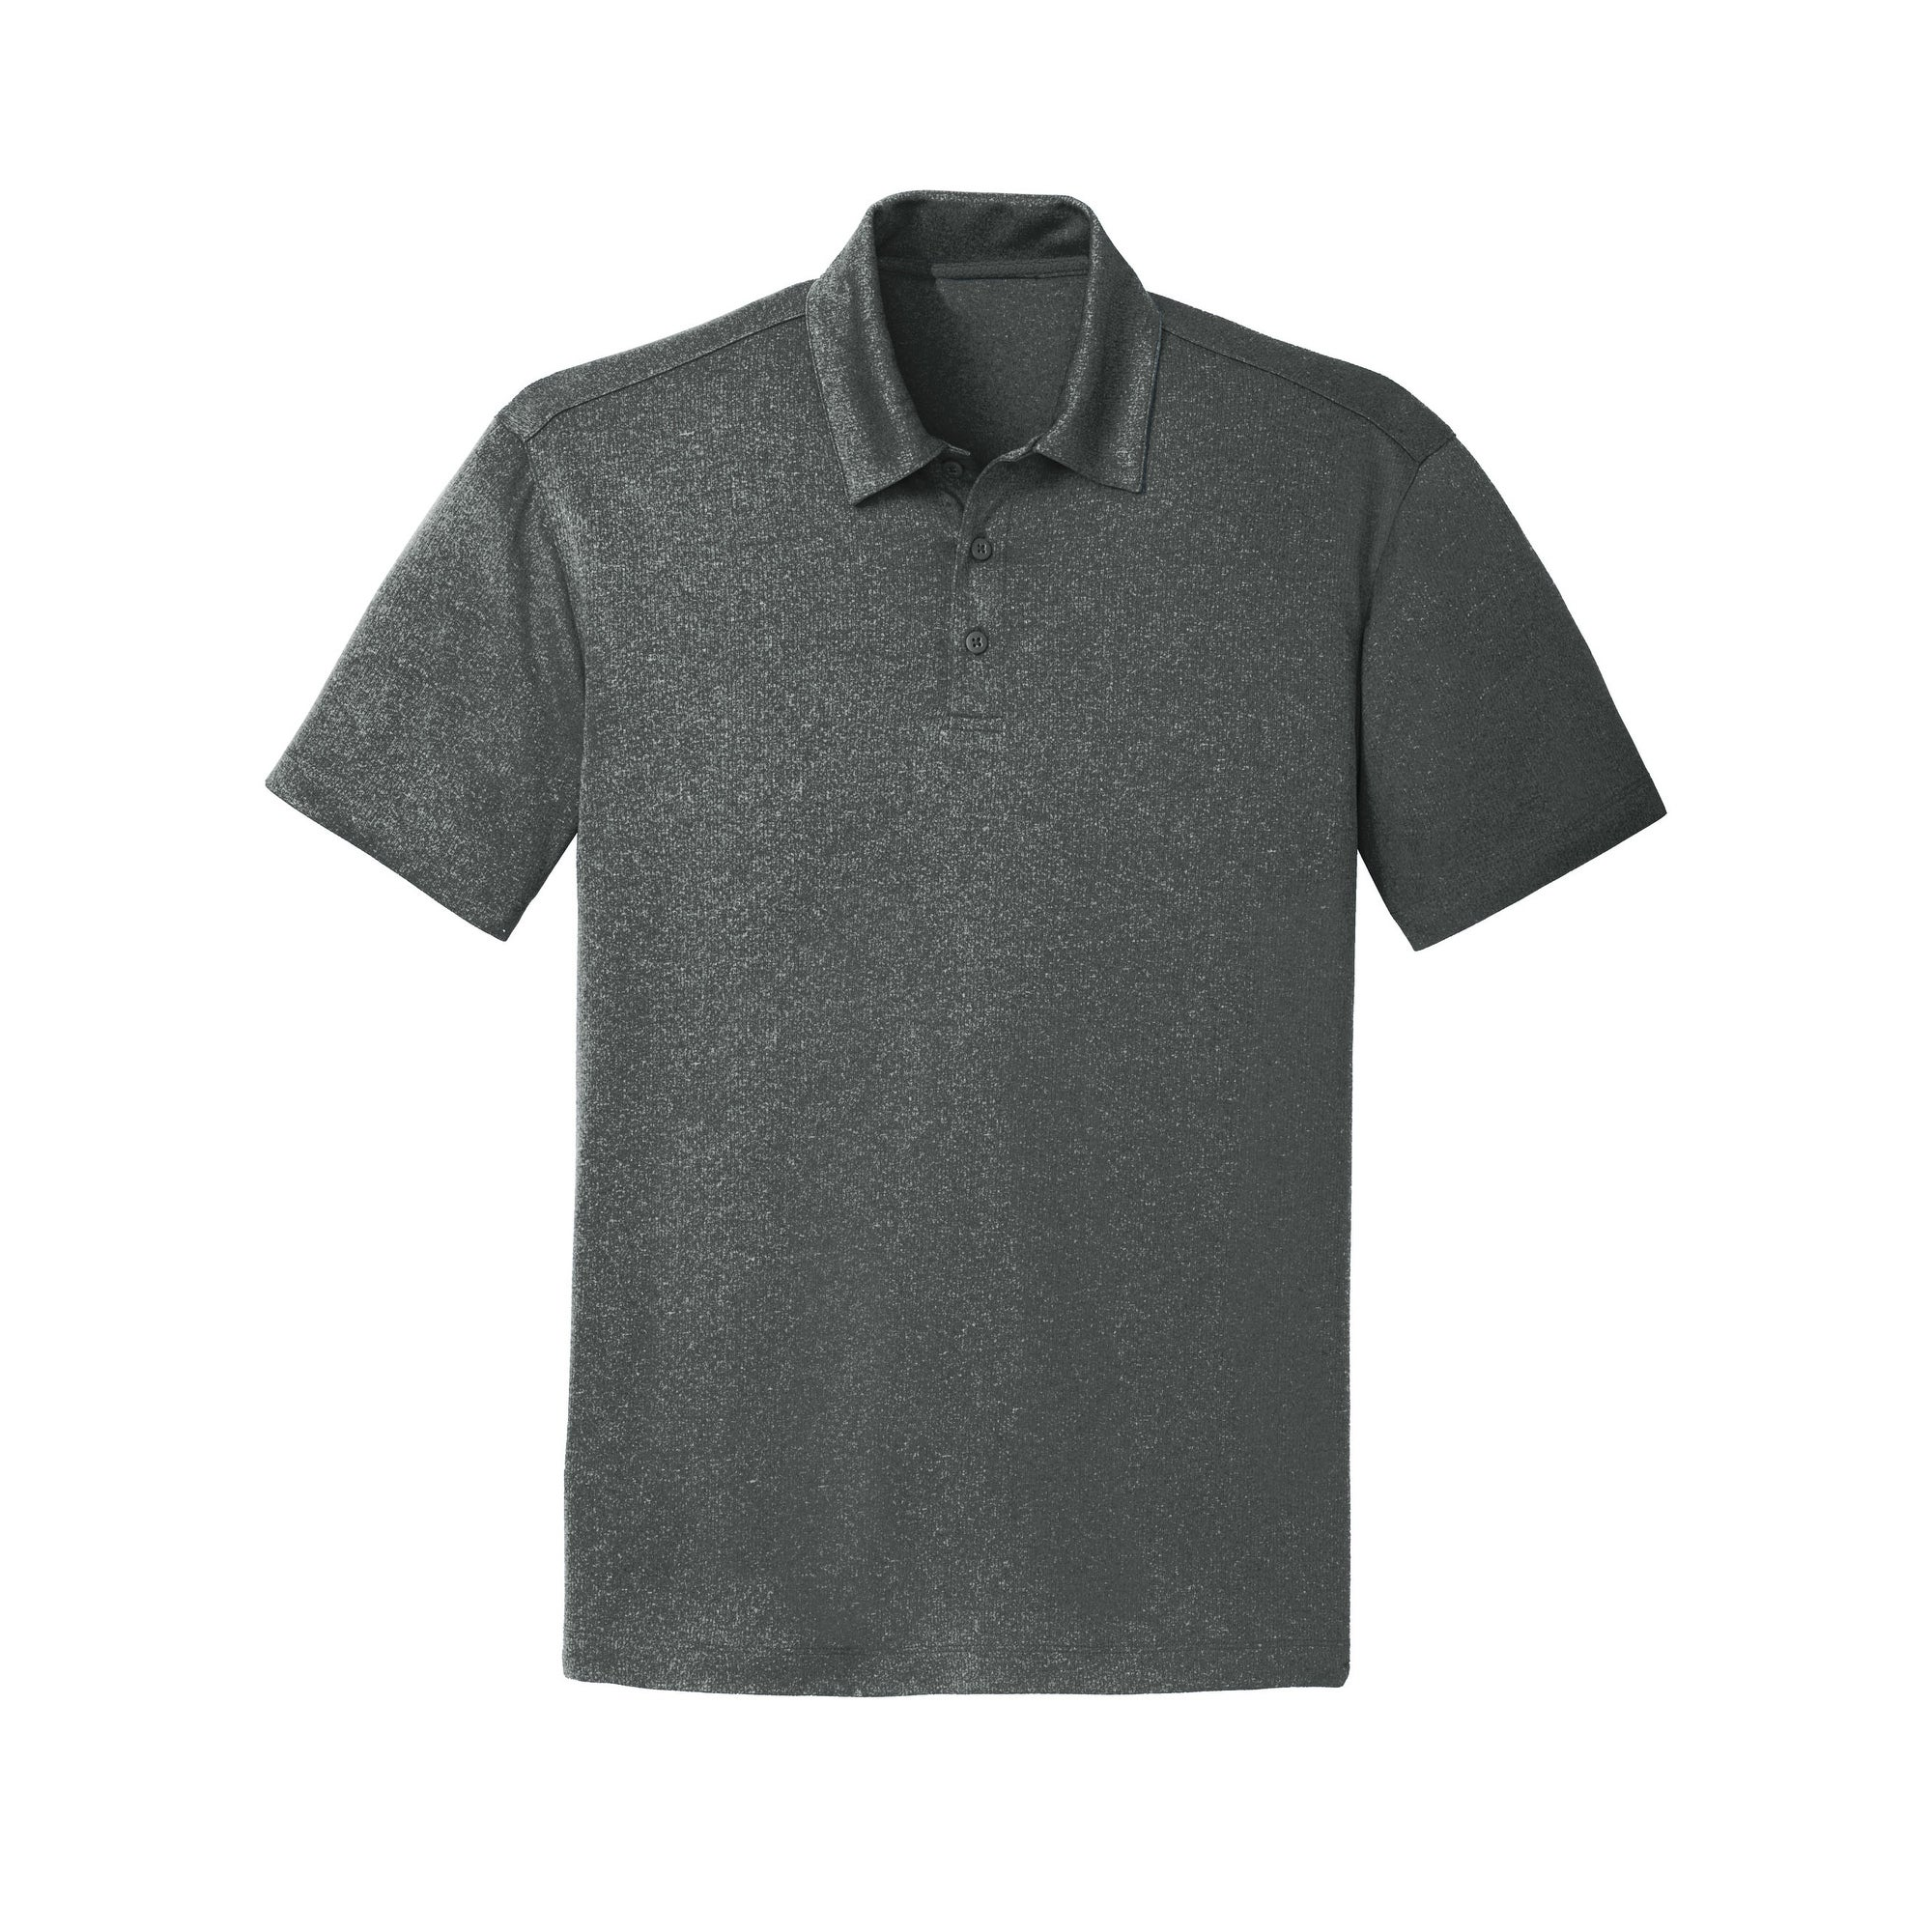 b6d339a27 Polo Shirts | Find Great Men's Clothing Deals Shopping at Overstock